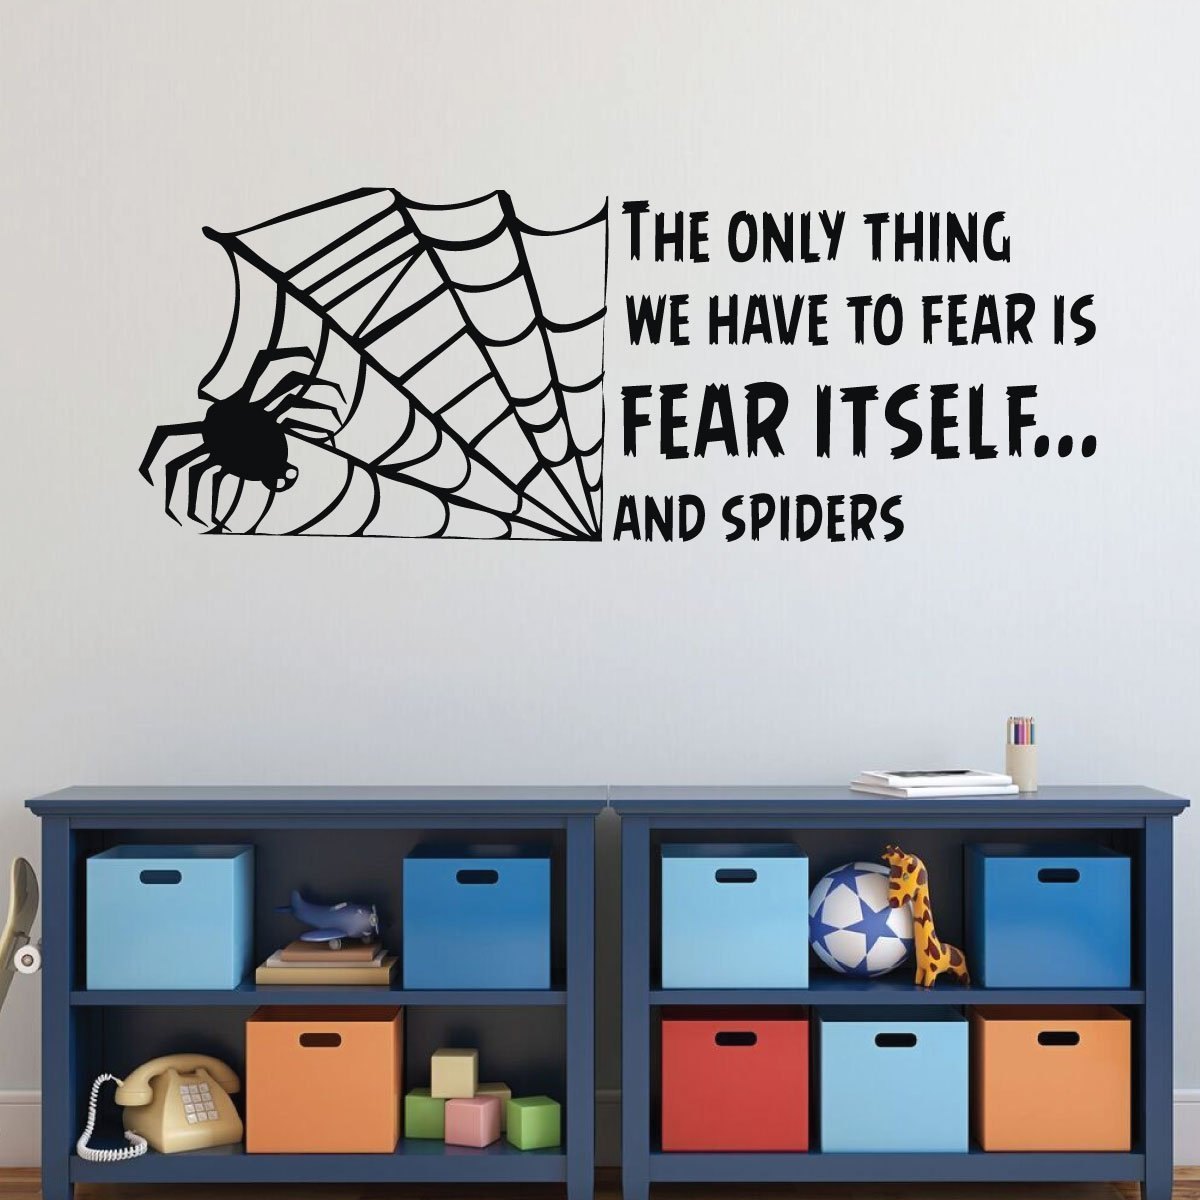 Halloween Decoration Spider - The Only Thing We Have To Fear is Fear Itself...And Spiders